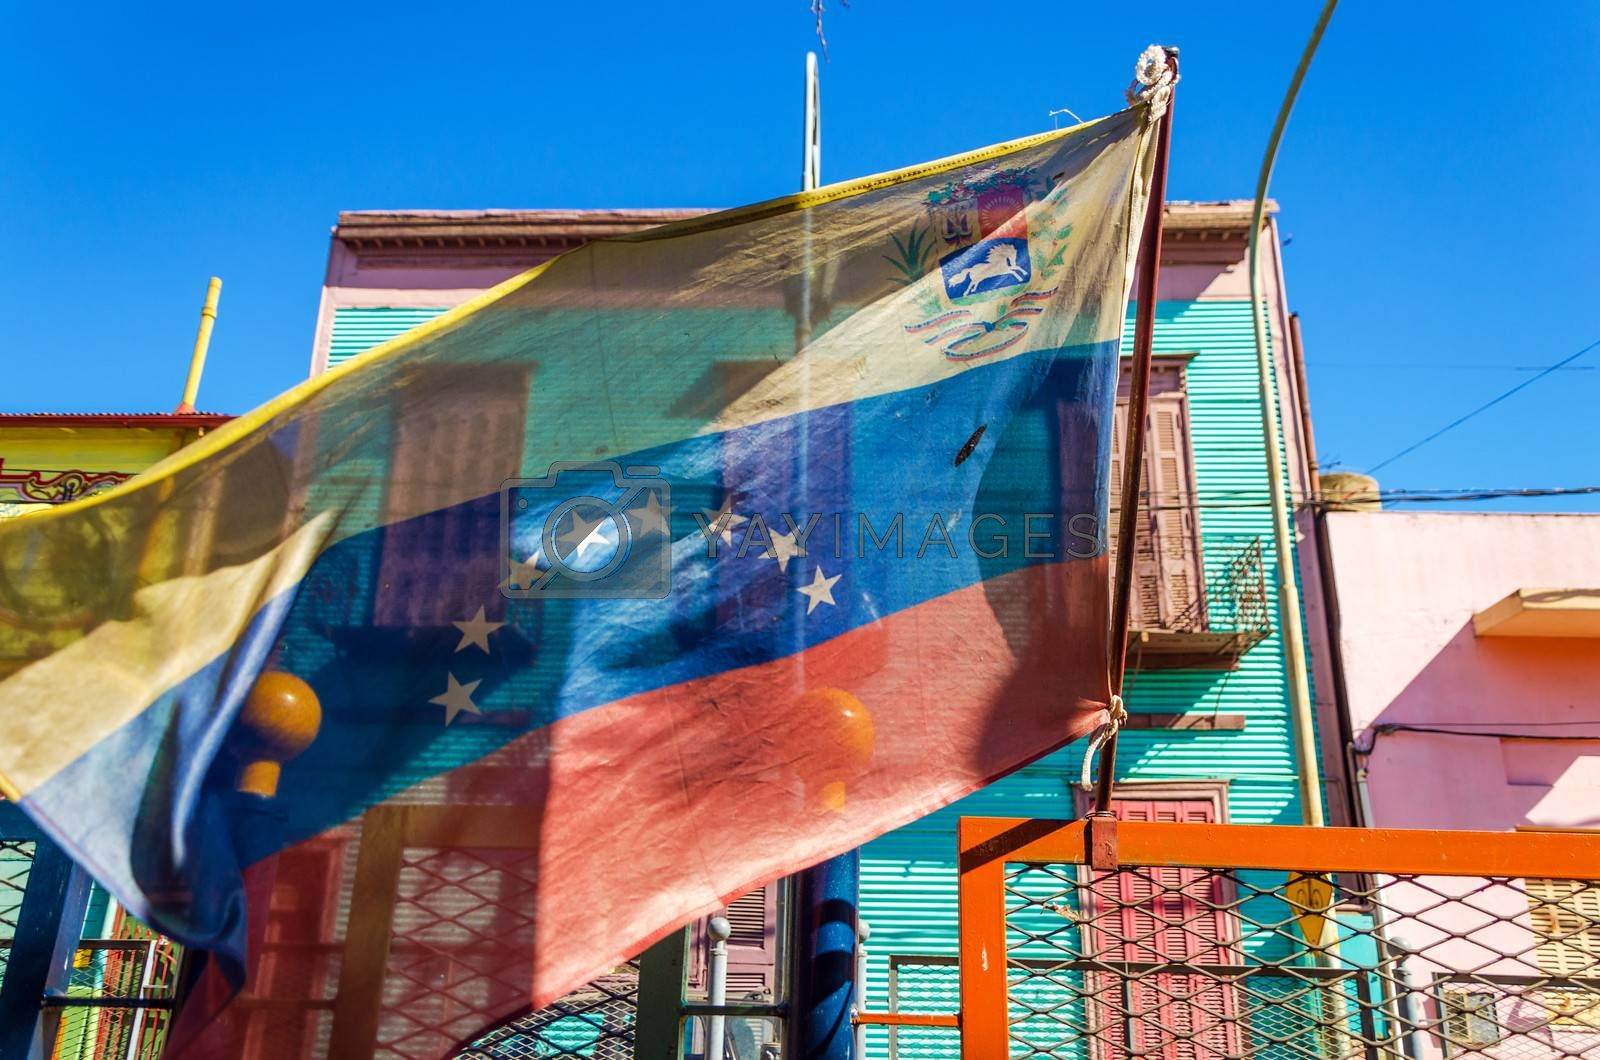 Venezuelan flag blowing in the wind with brightly colored buildings